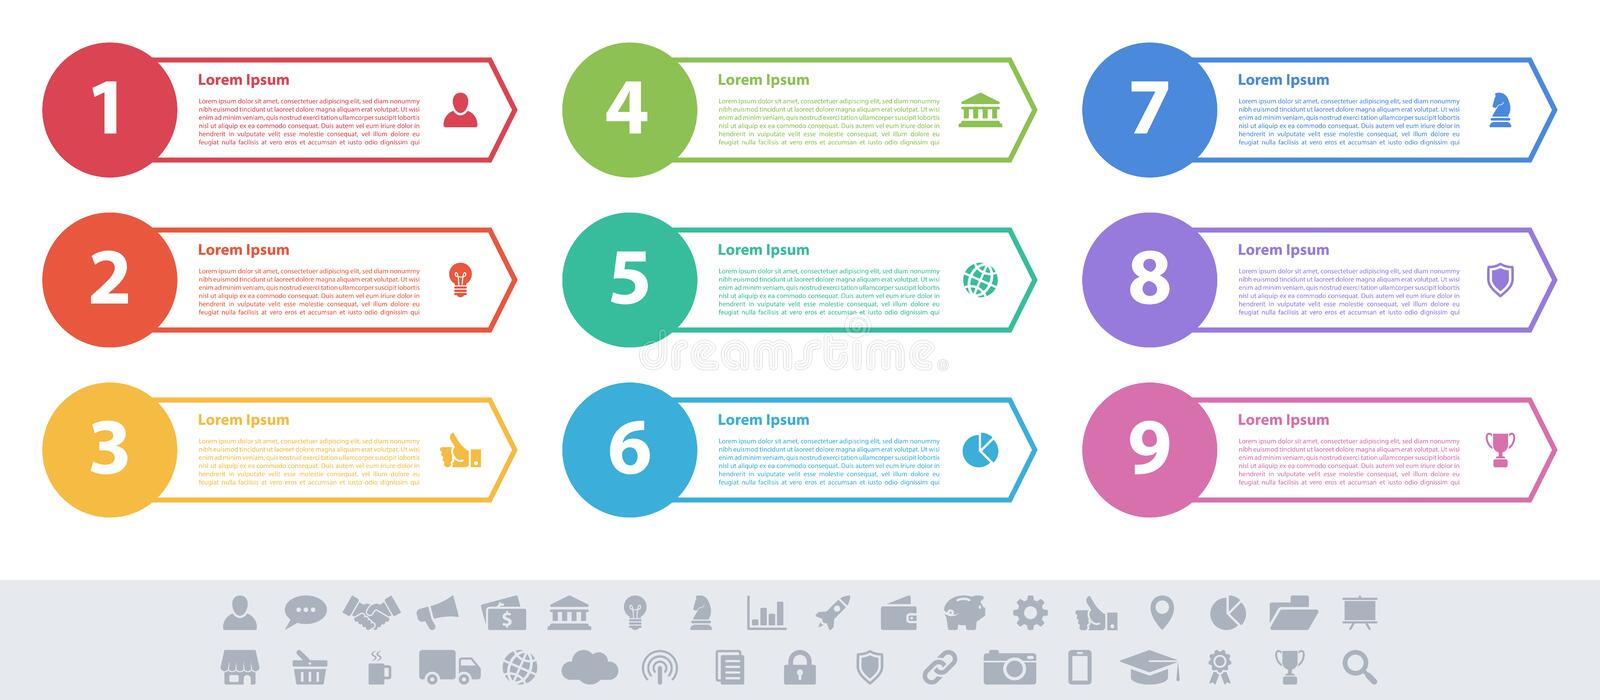 Infographic design business concept with 9 steps vector illustration